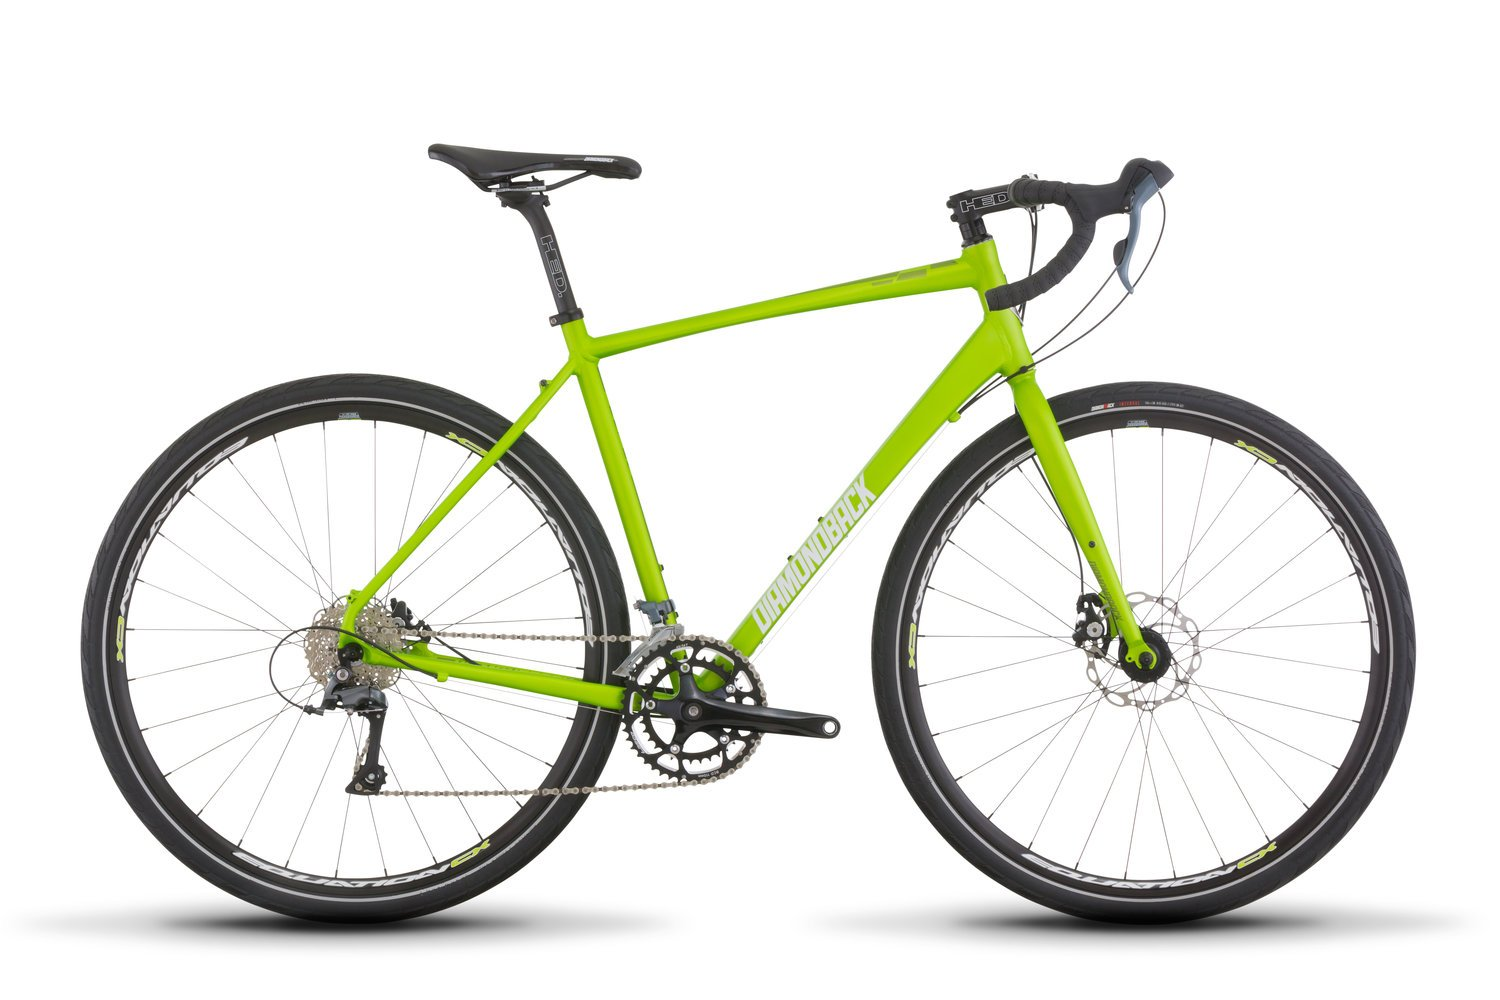 Diamondback Adventure Road Bike Best Touring Bikes Under $1000